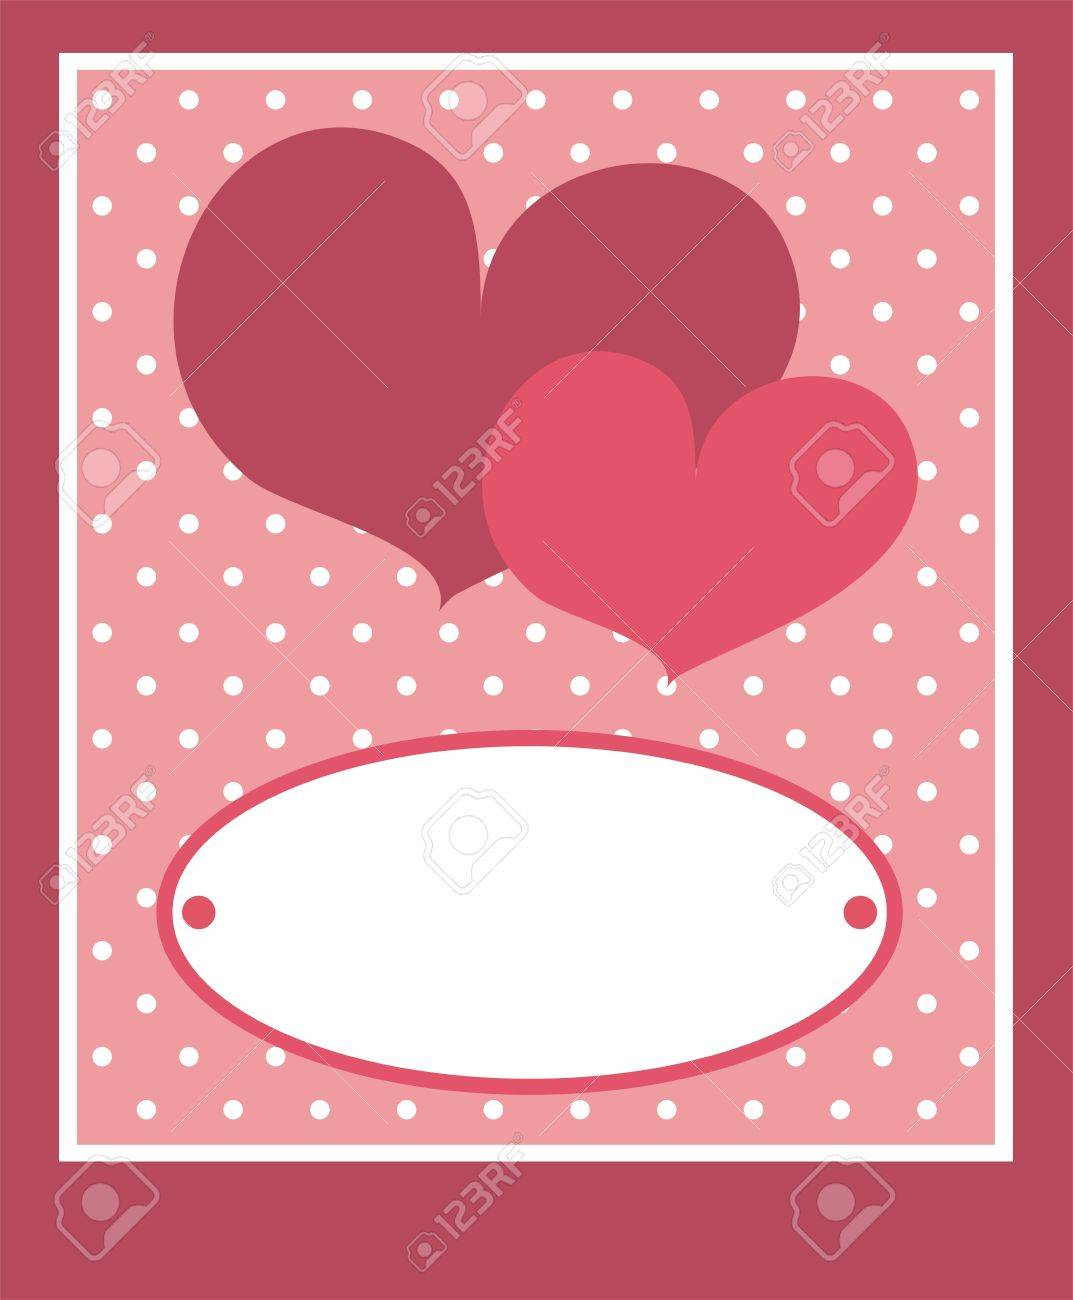 Cute Pink Heart With Dots Background And White Space To Put Your Own Text Message